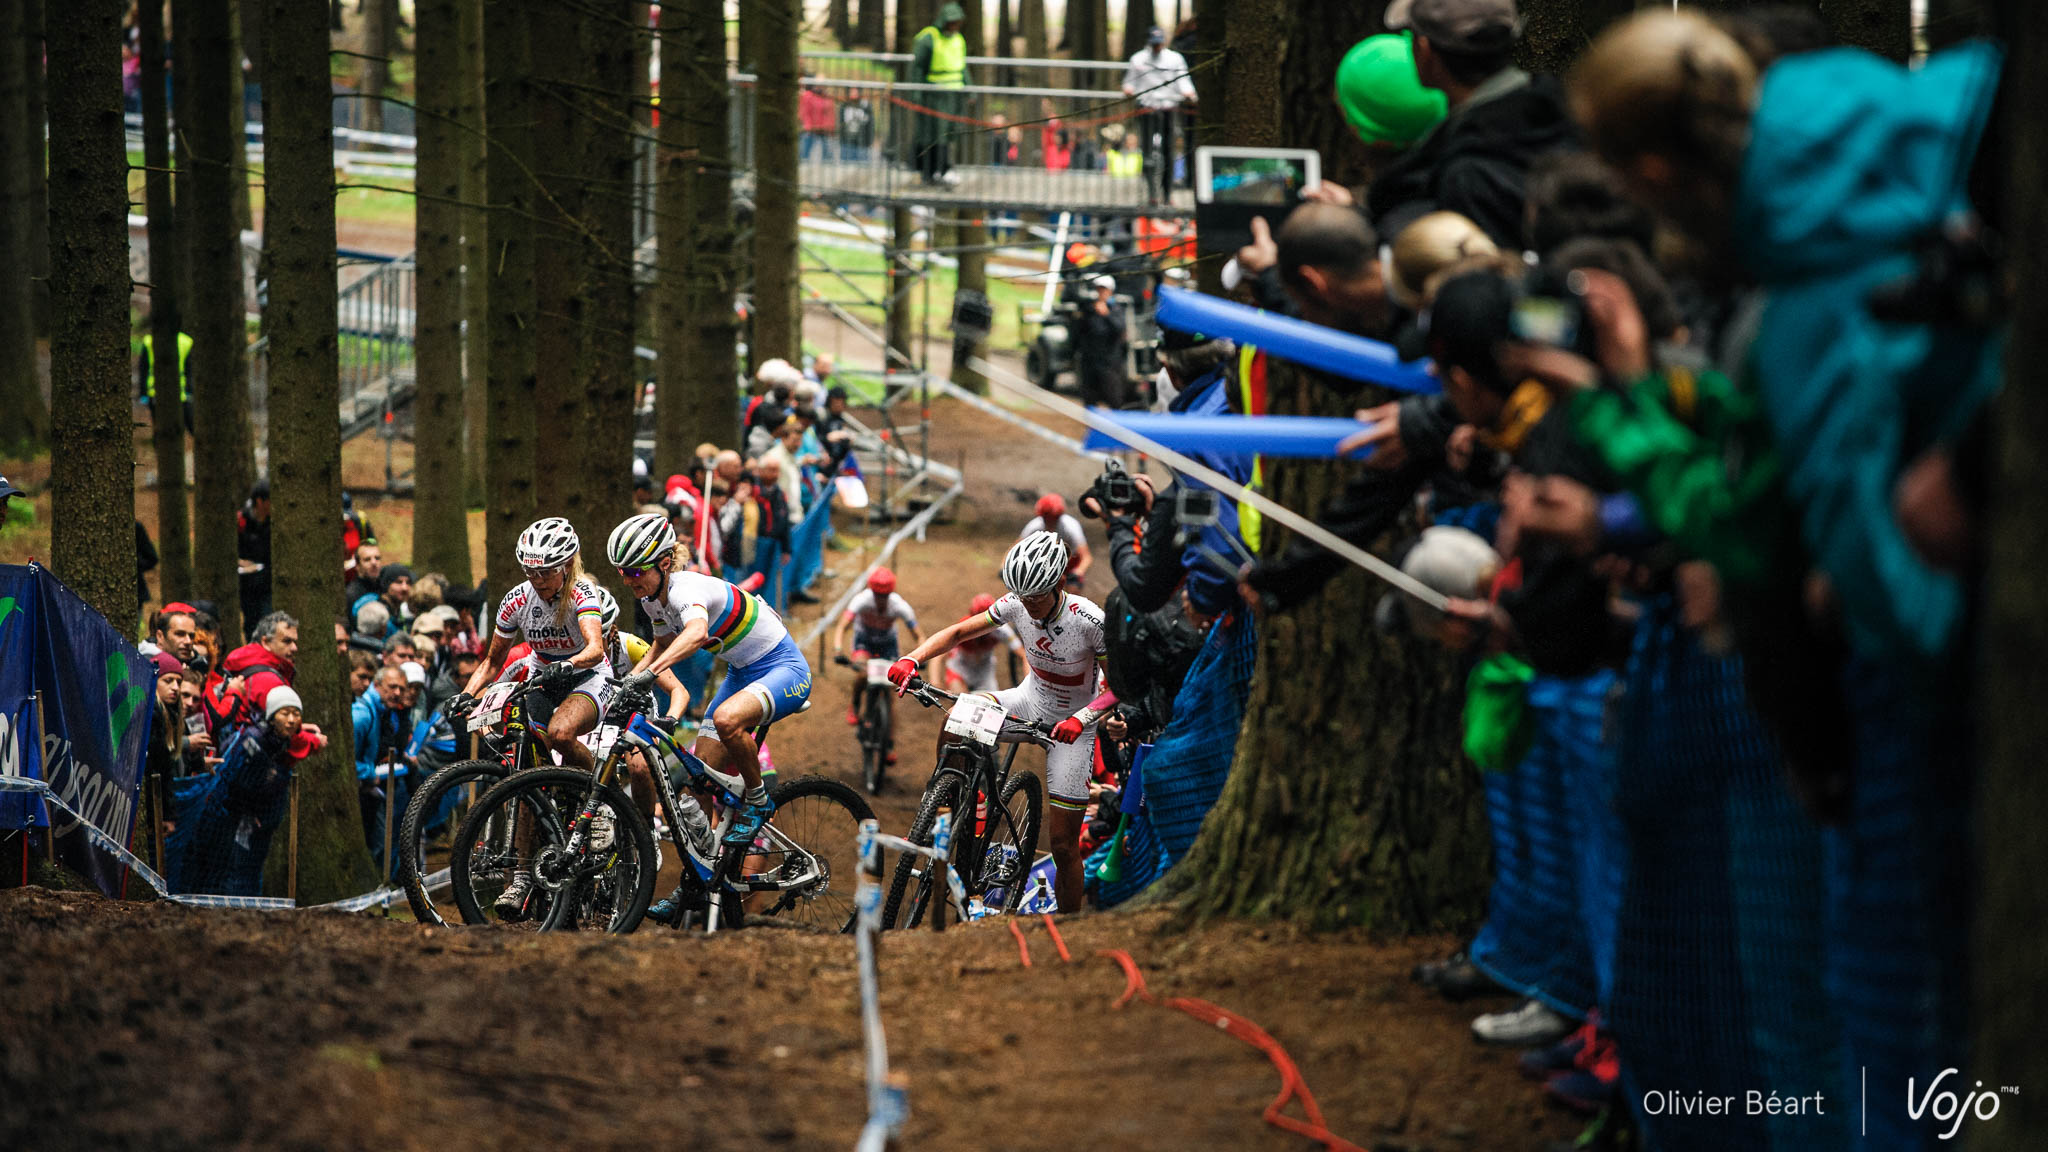 World_Cup_Coupe_Monde_Nove_Mesto_2015_Dames_Copyright_OBeart_VojoMag-6